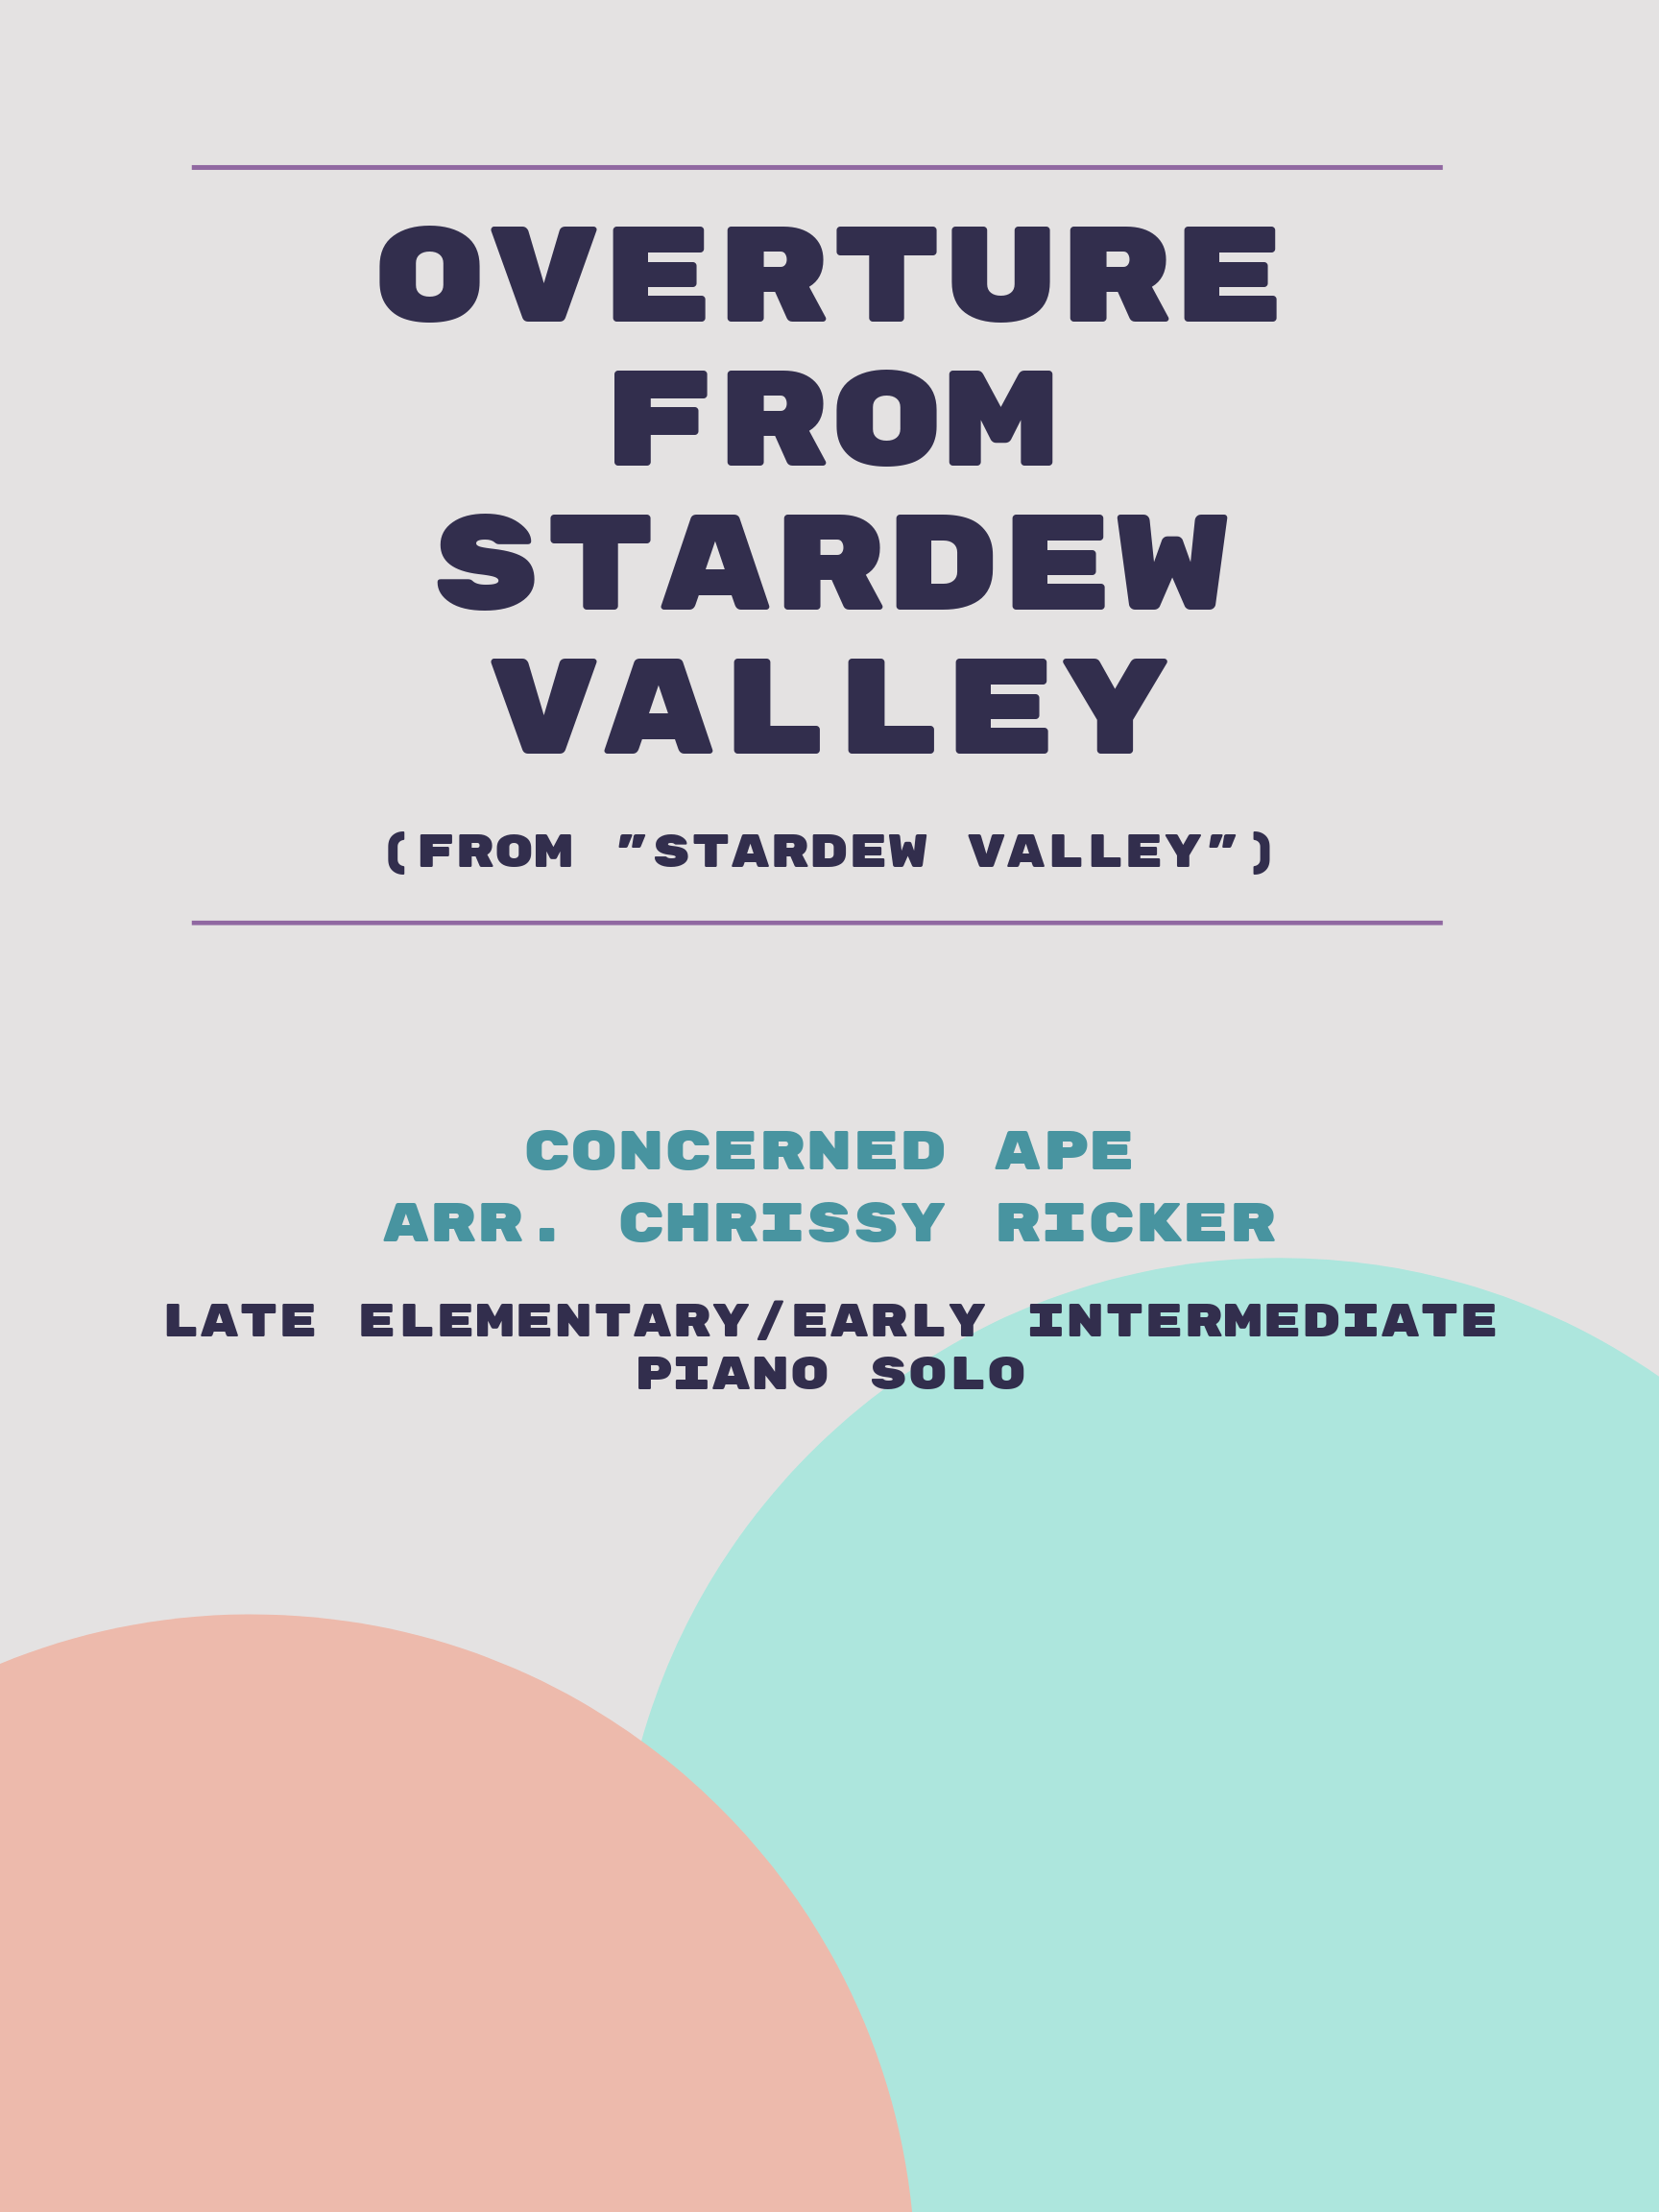 Overture from Stardew Valley by Concerned Ape